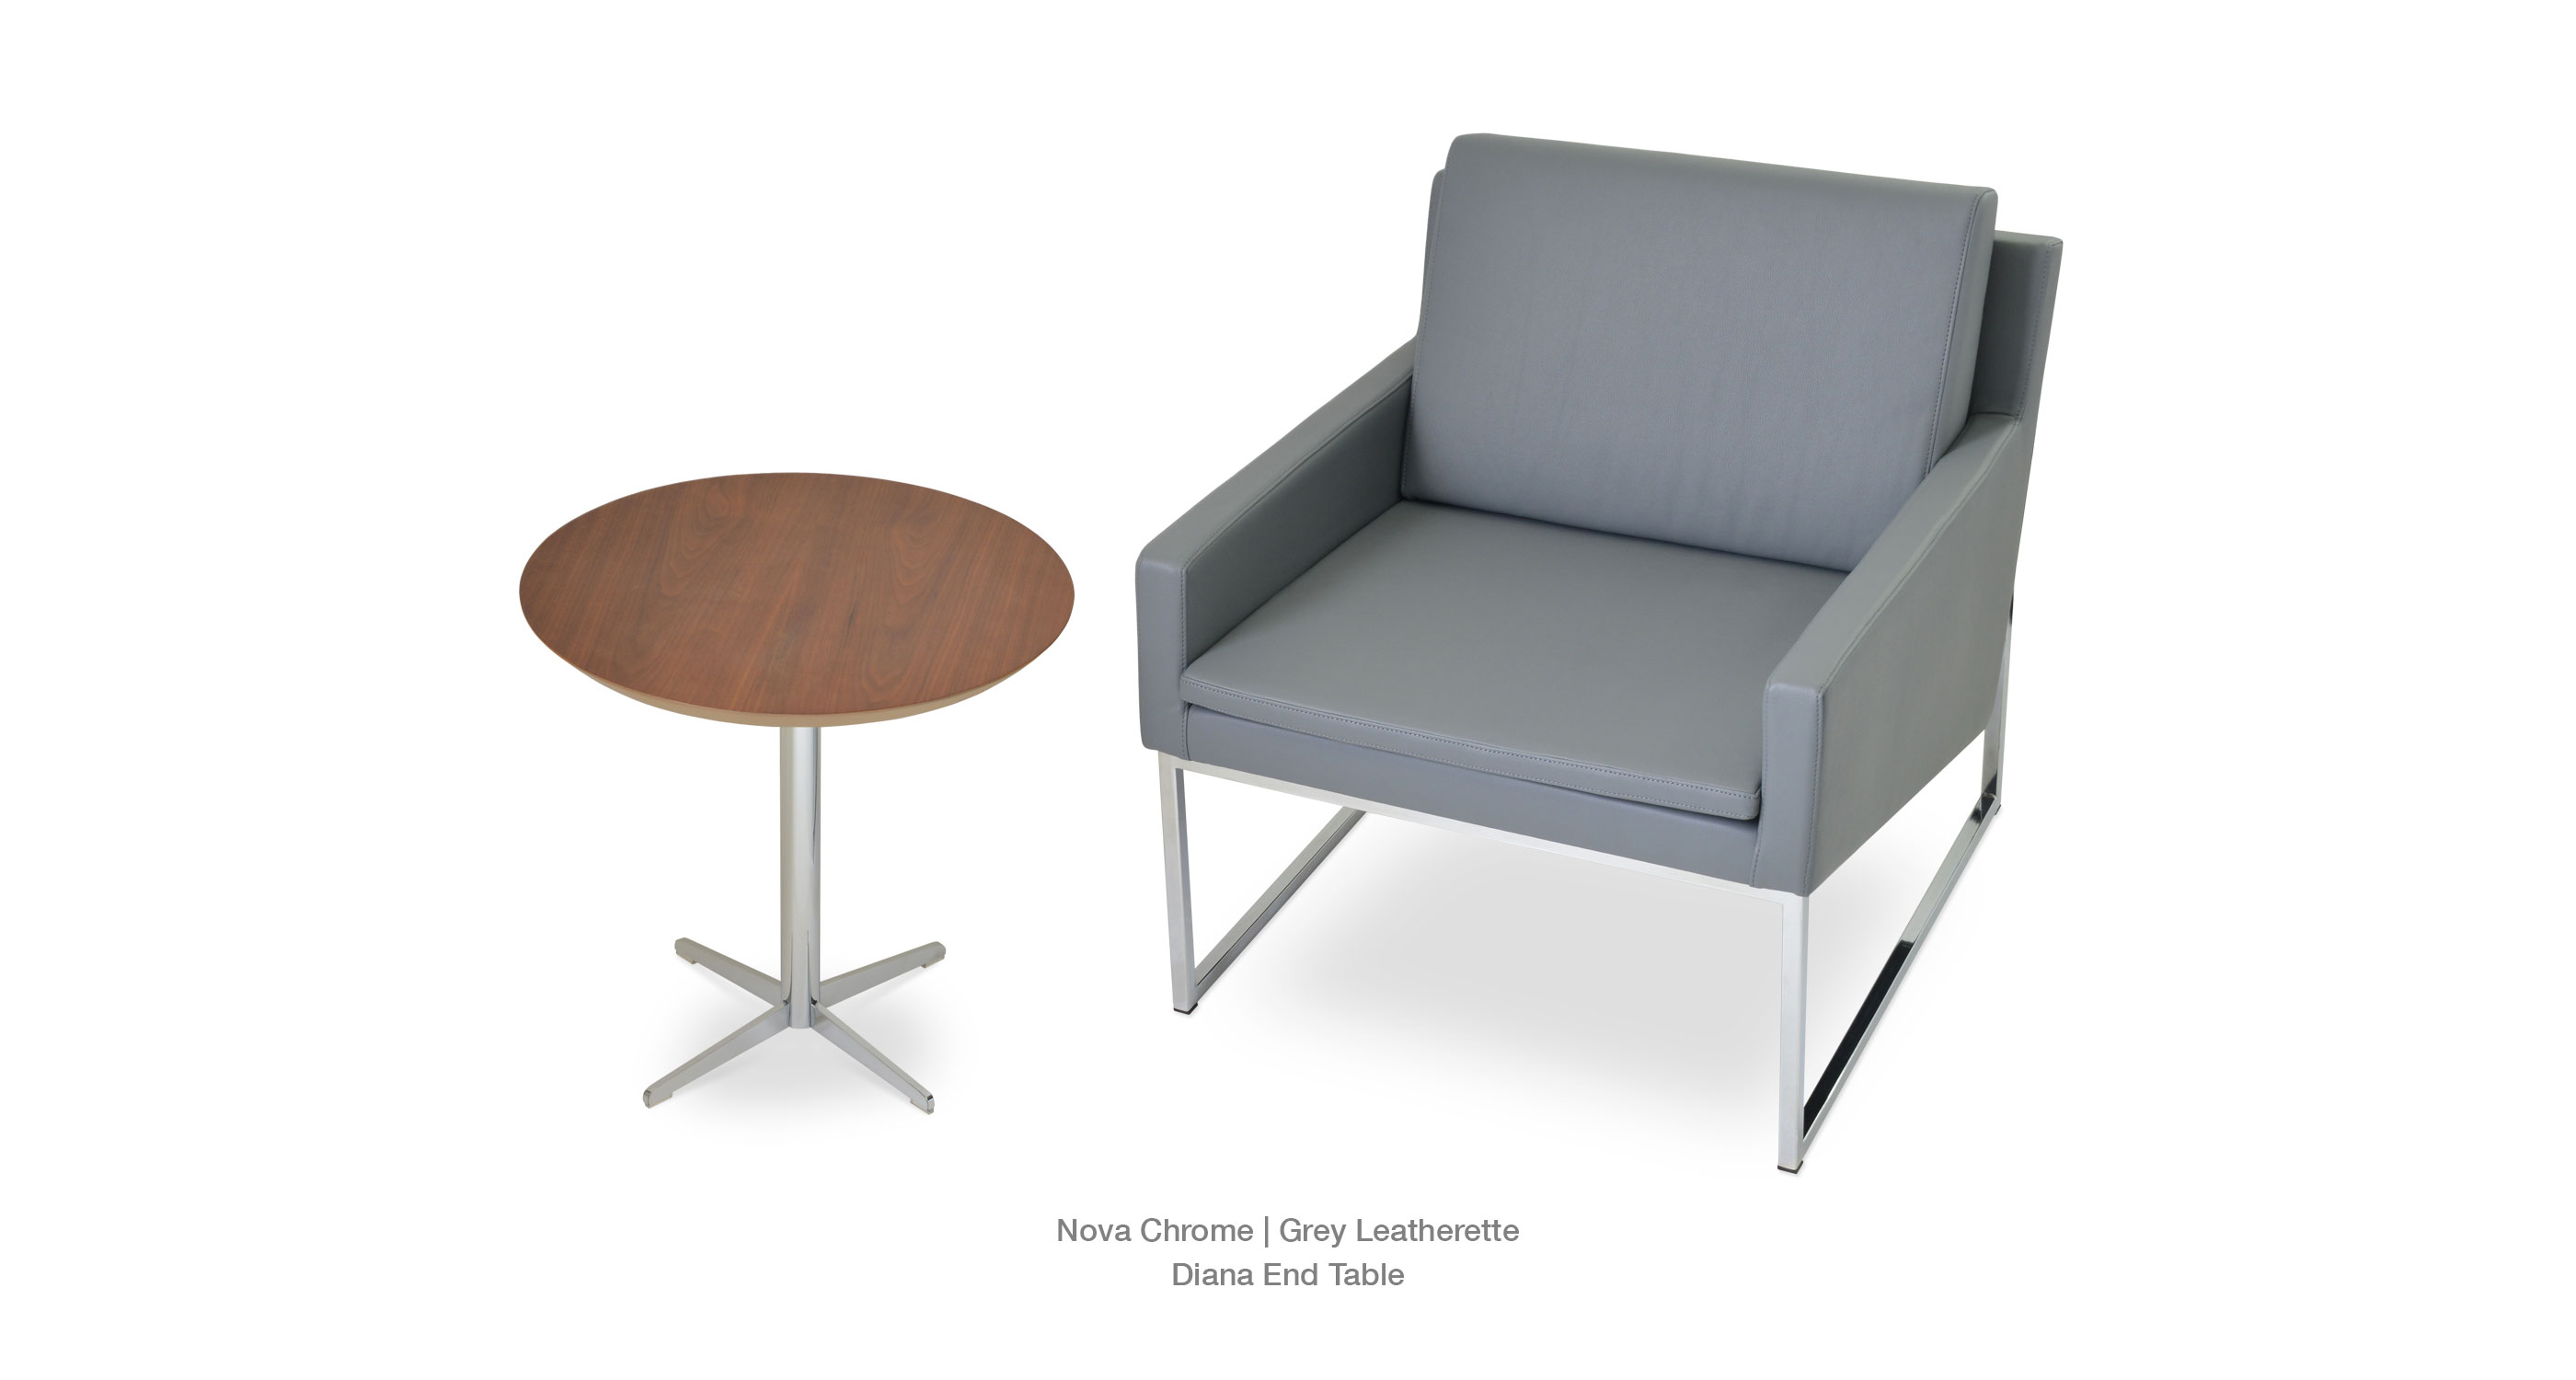 Nova Chrome Grey Leatherette